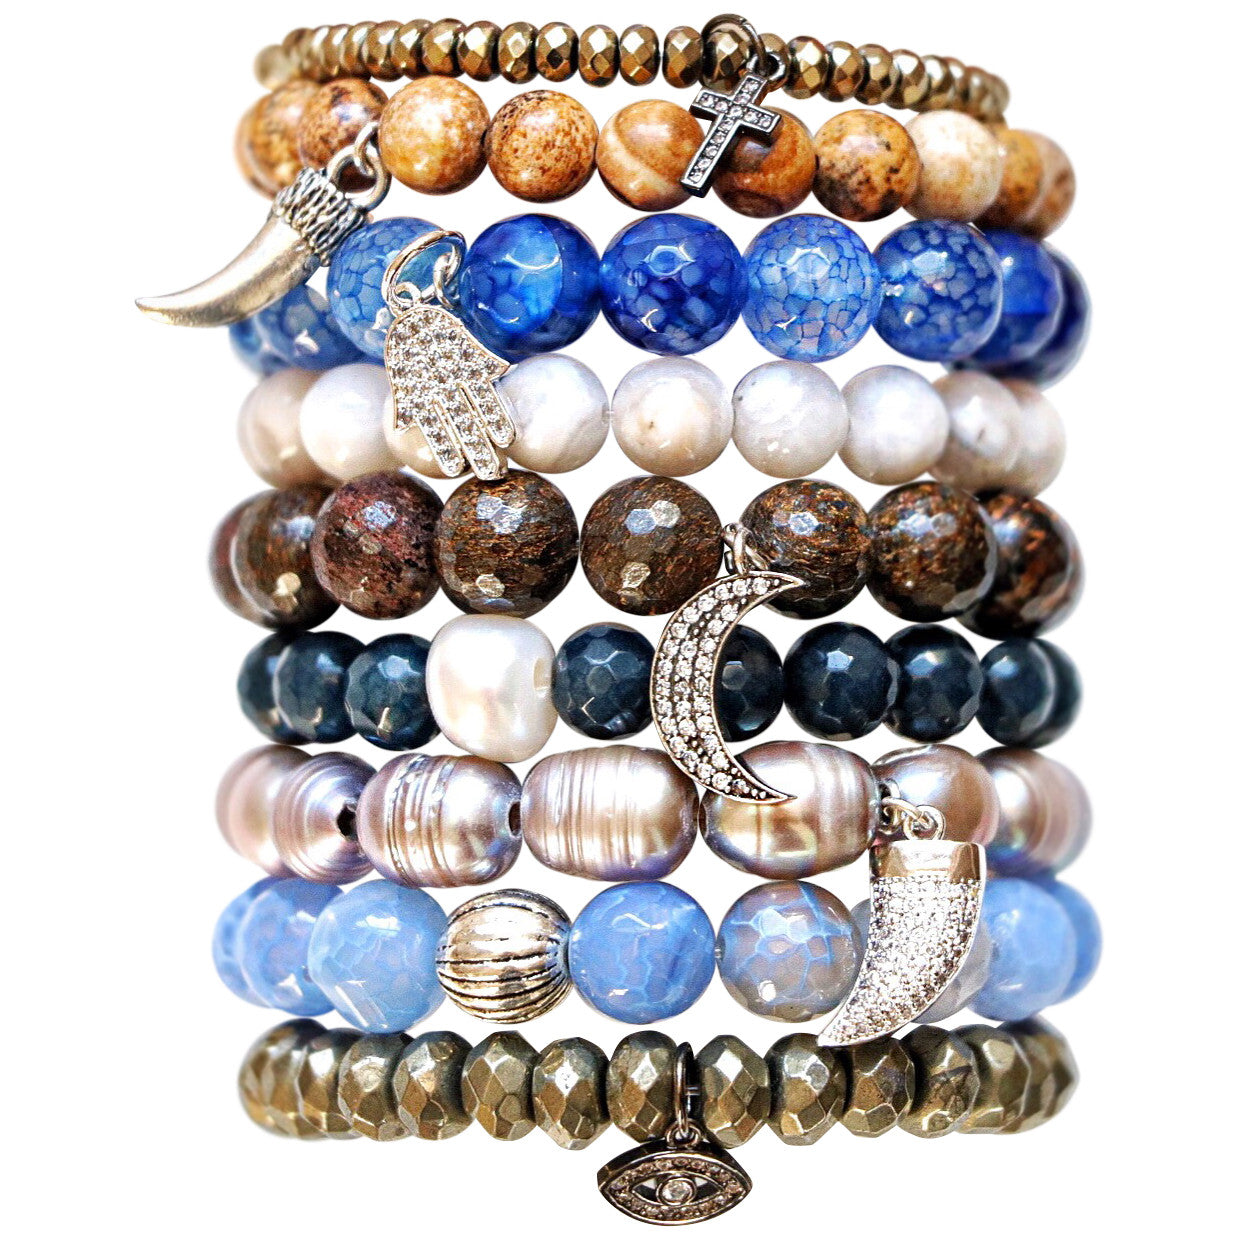 Molly Jane Designs Ocean Blue Agate Charm Bracelet